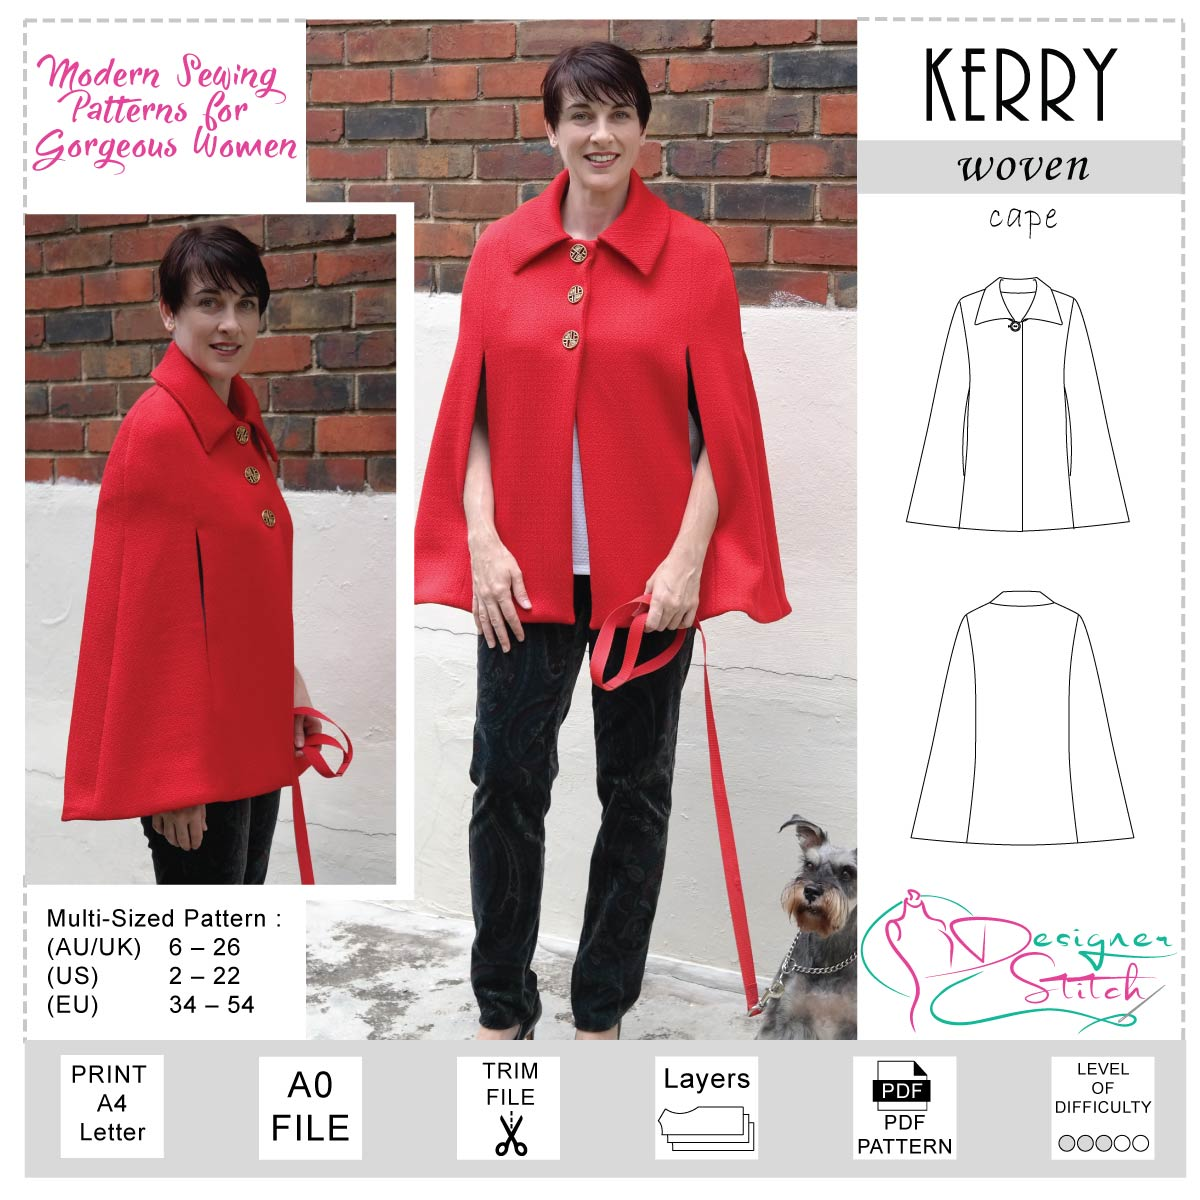 Kerry Capelet Sewing Pattern Pdf Designer Stitch